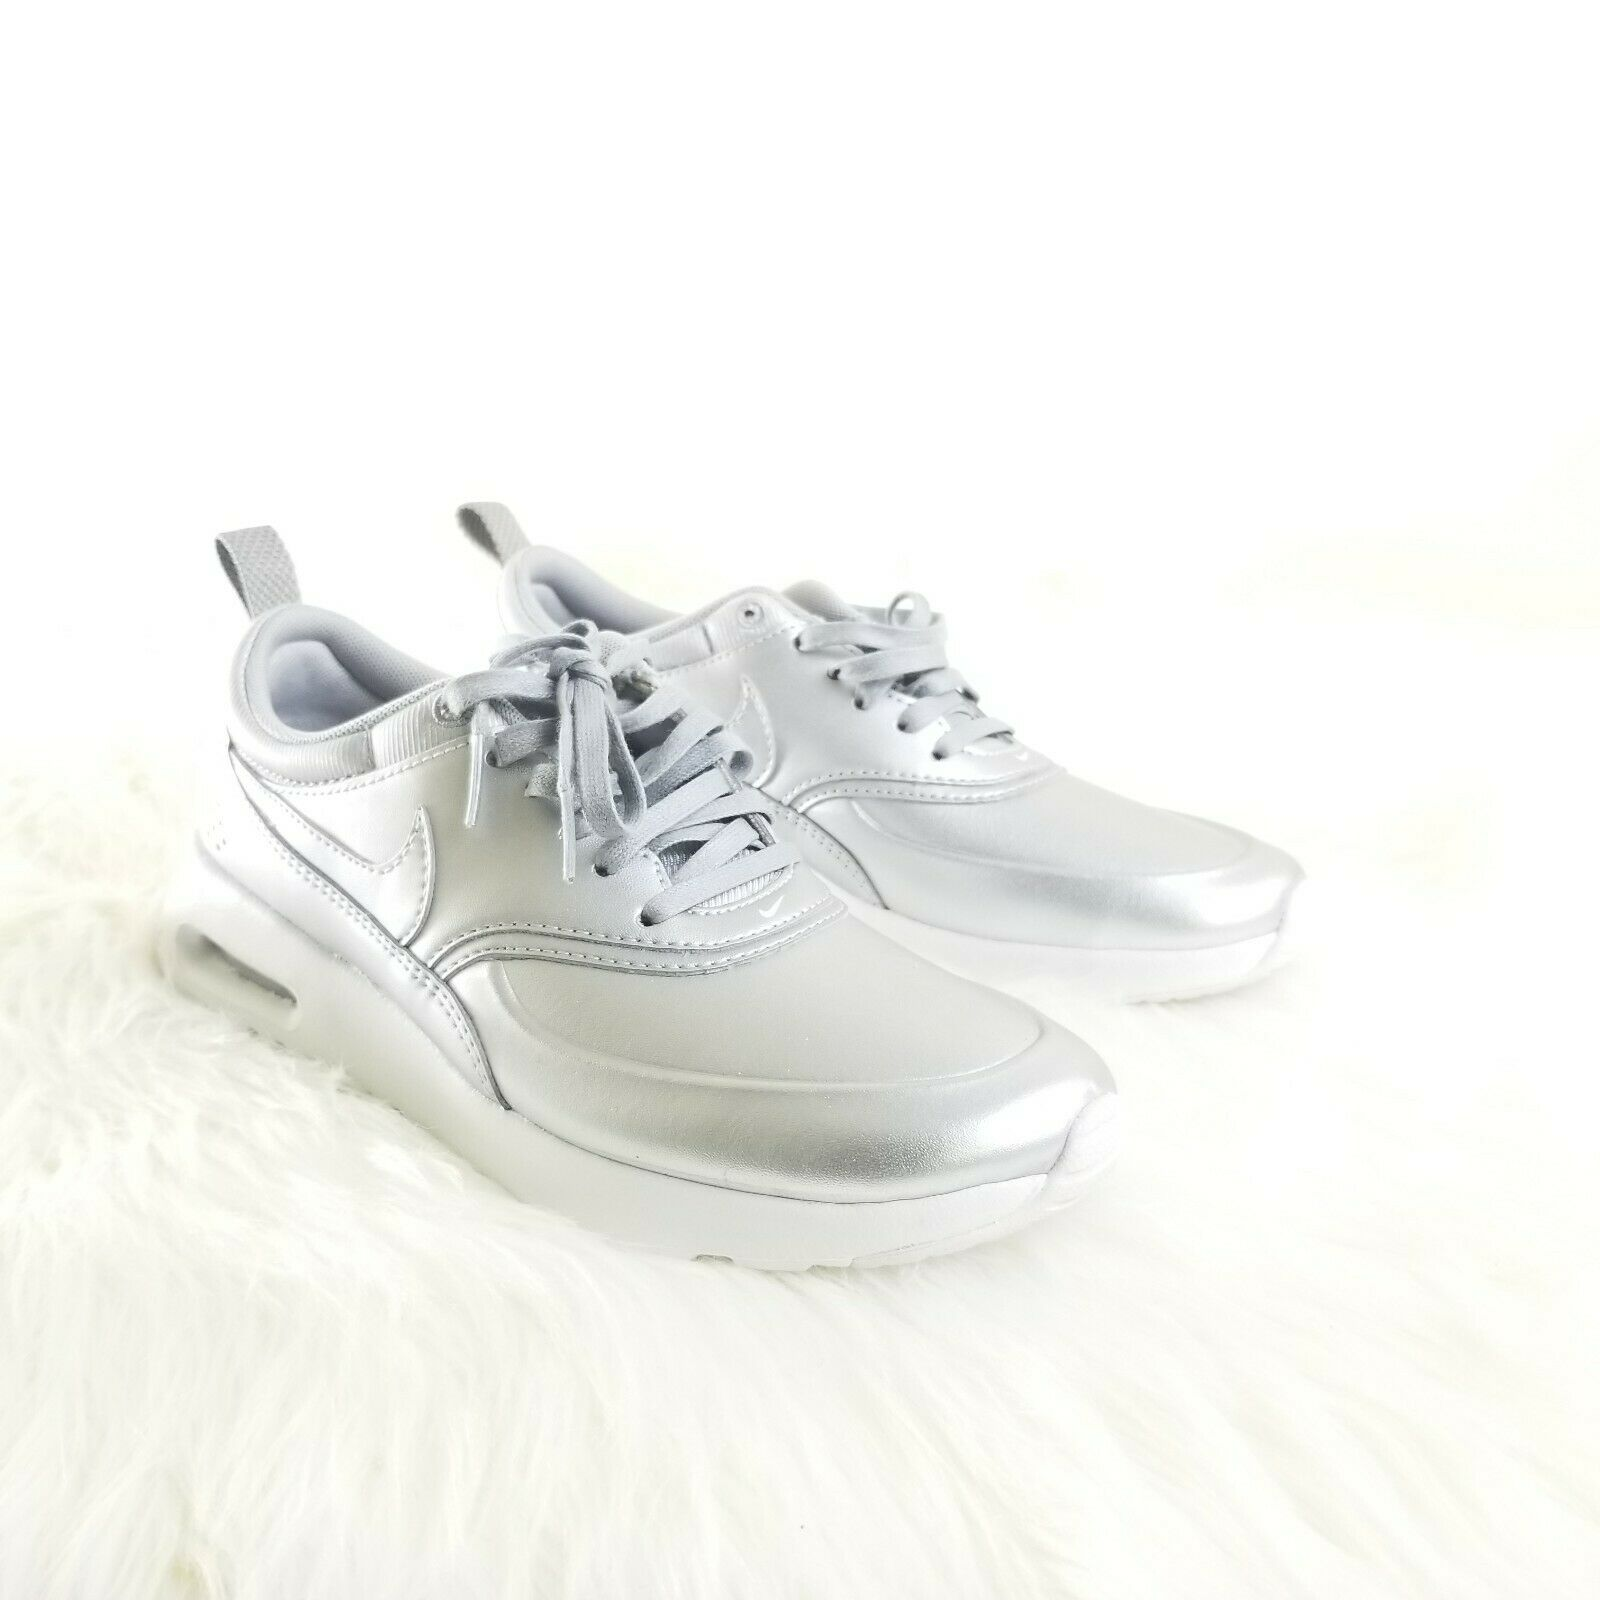 Nike Air Max Thea SE Metallic Silver 861674-001 Special Edition Women Size 6